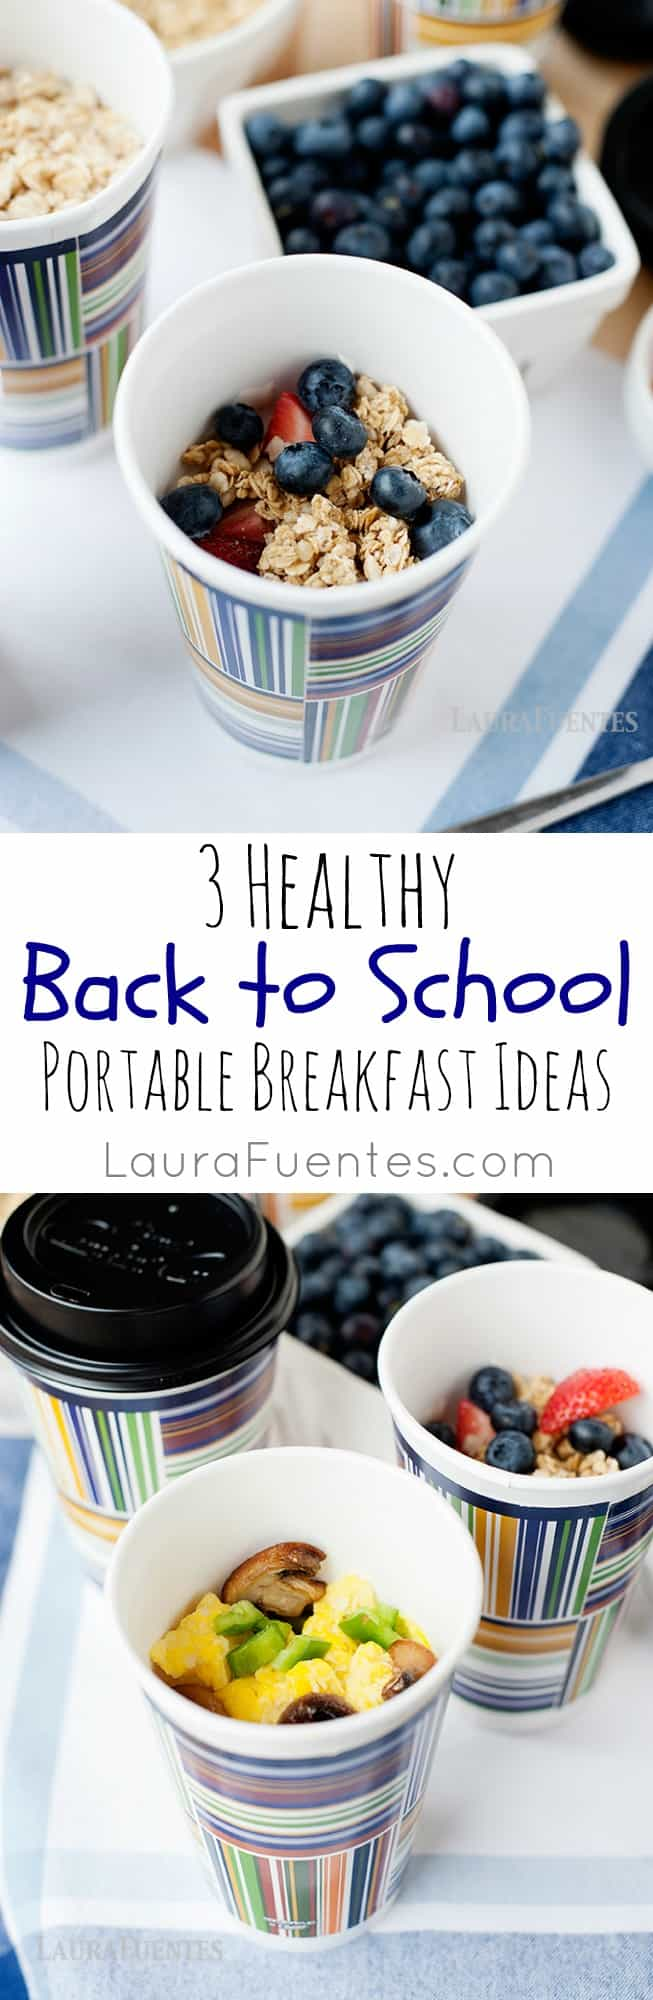 3 Easy Breakfast ideas to-go! Make your morning routines a breeze with these fast breakfast ideas kids can eat on the go.